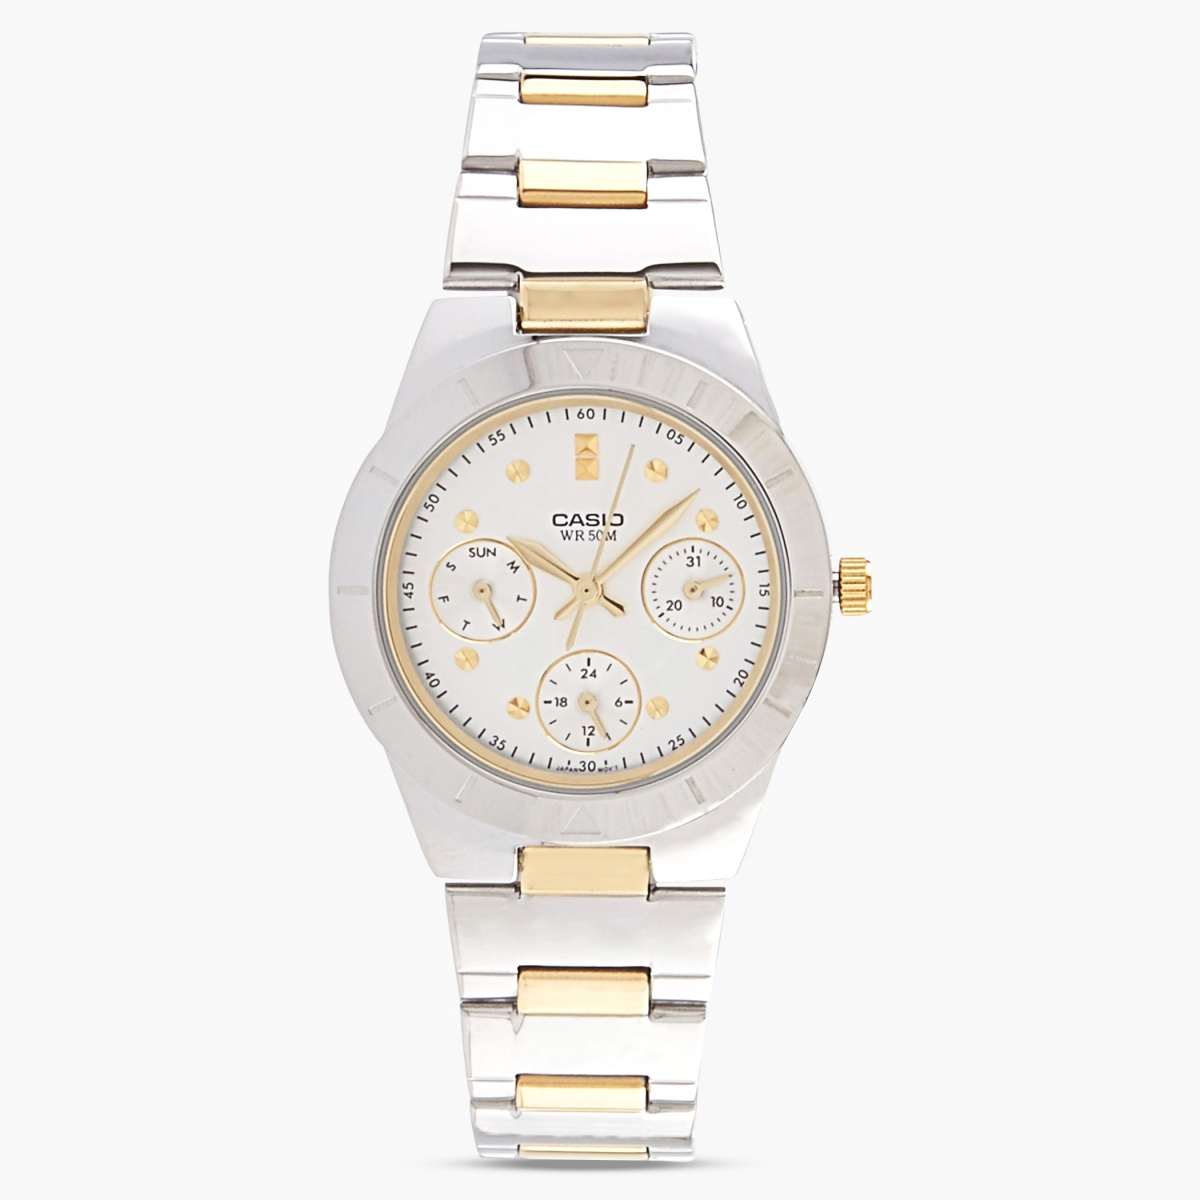 CASIO A530 Women Multifunction Watch